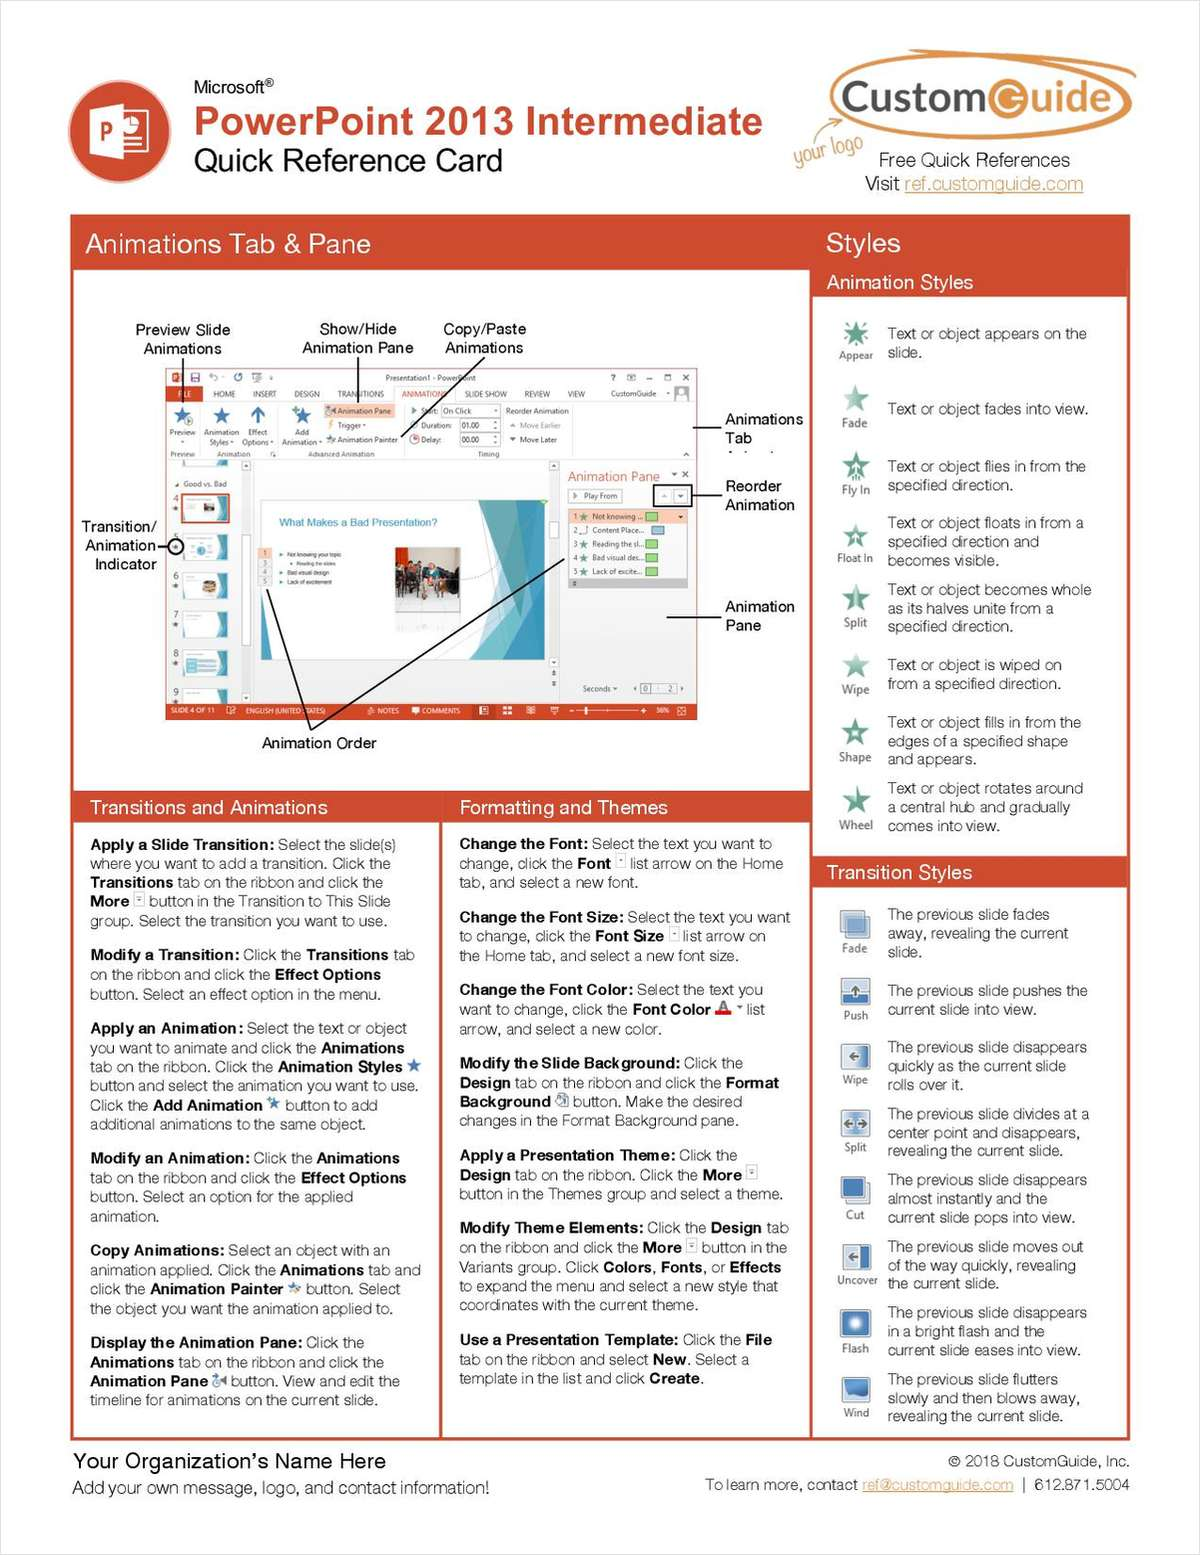 Microsoft PowerPoint 2013 Intermediate - Quick Reference Card